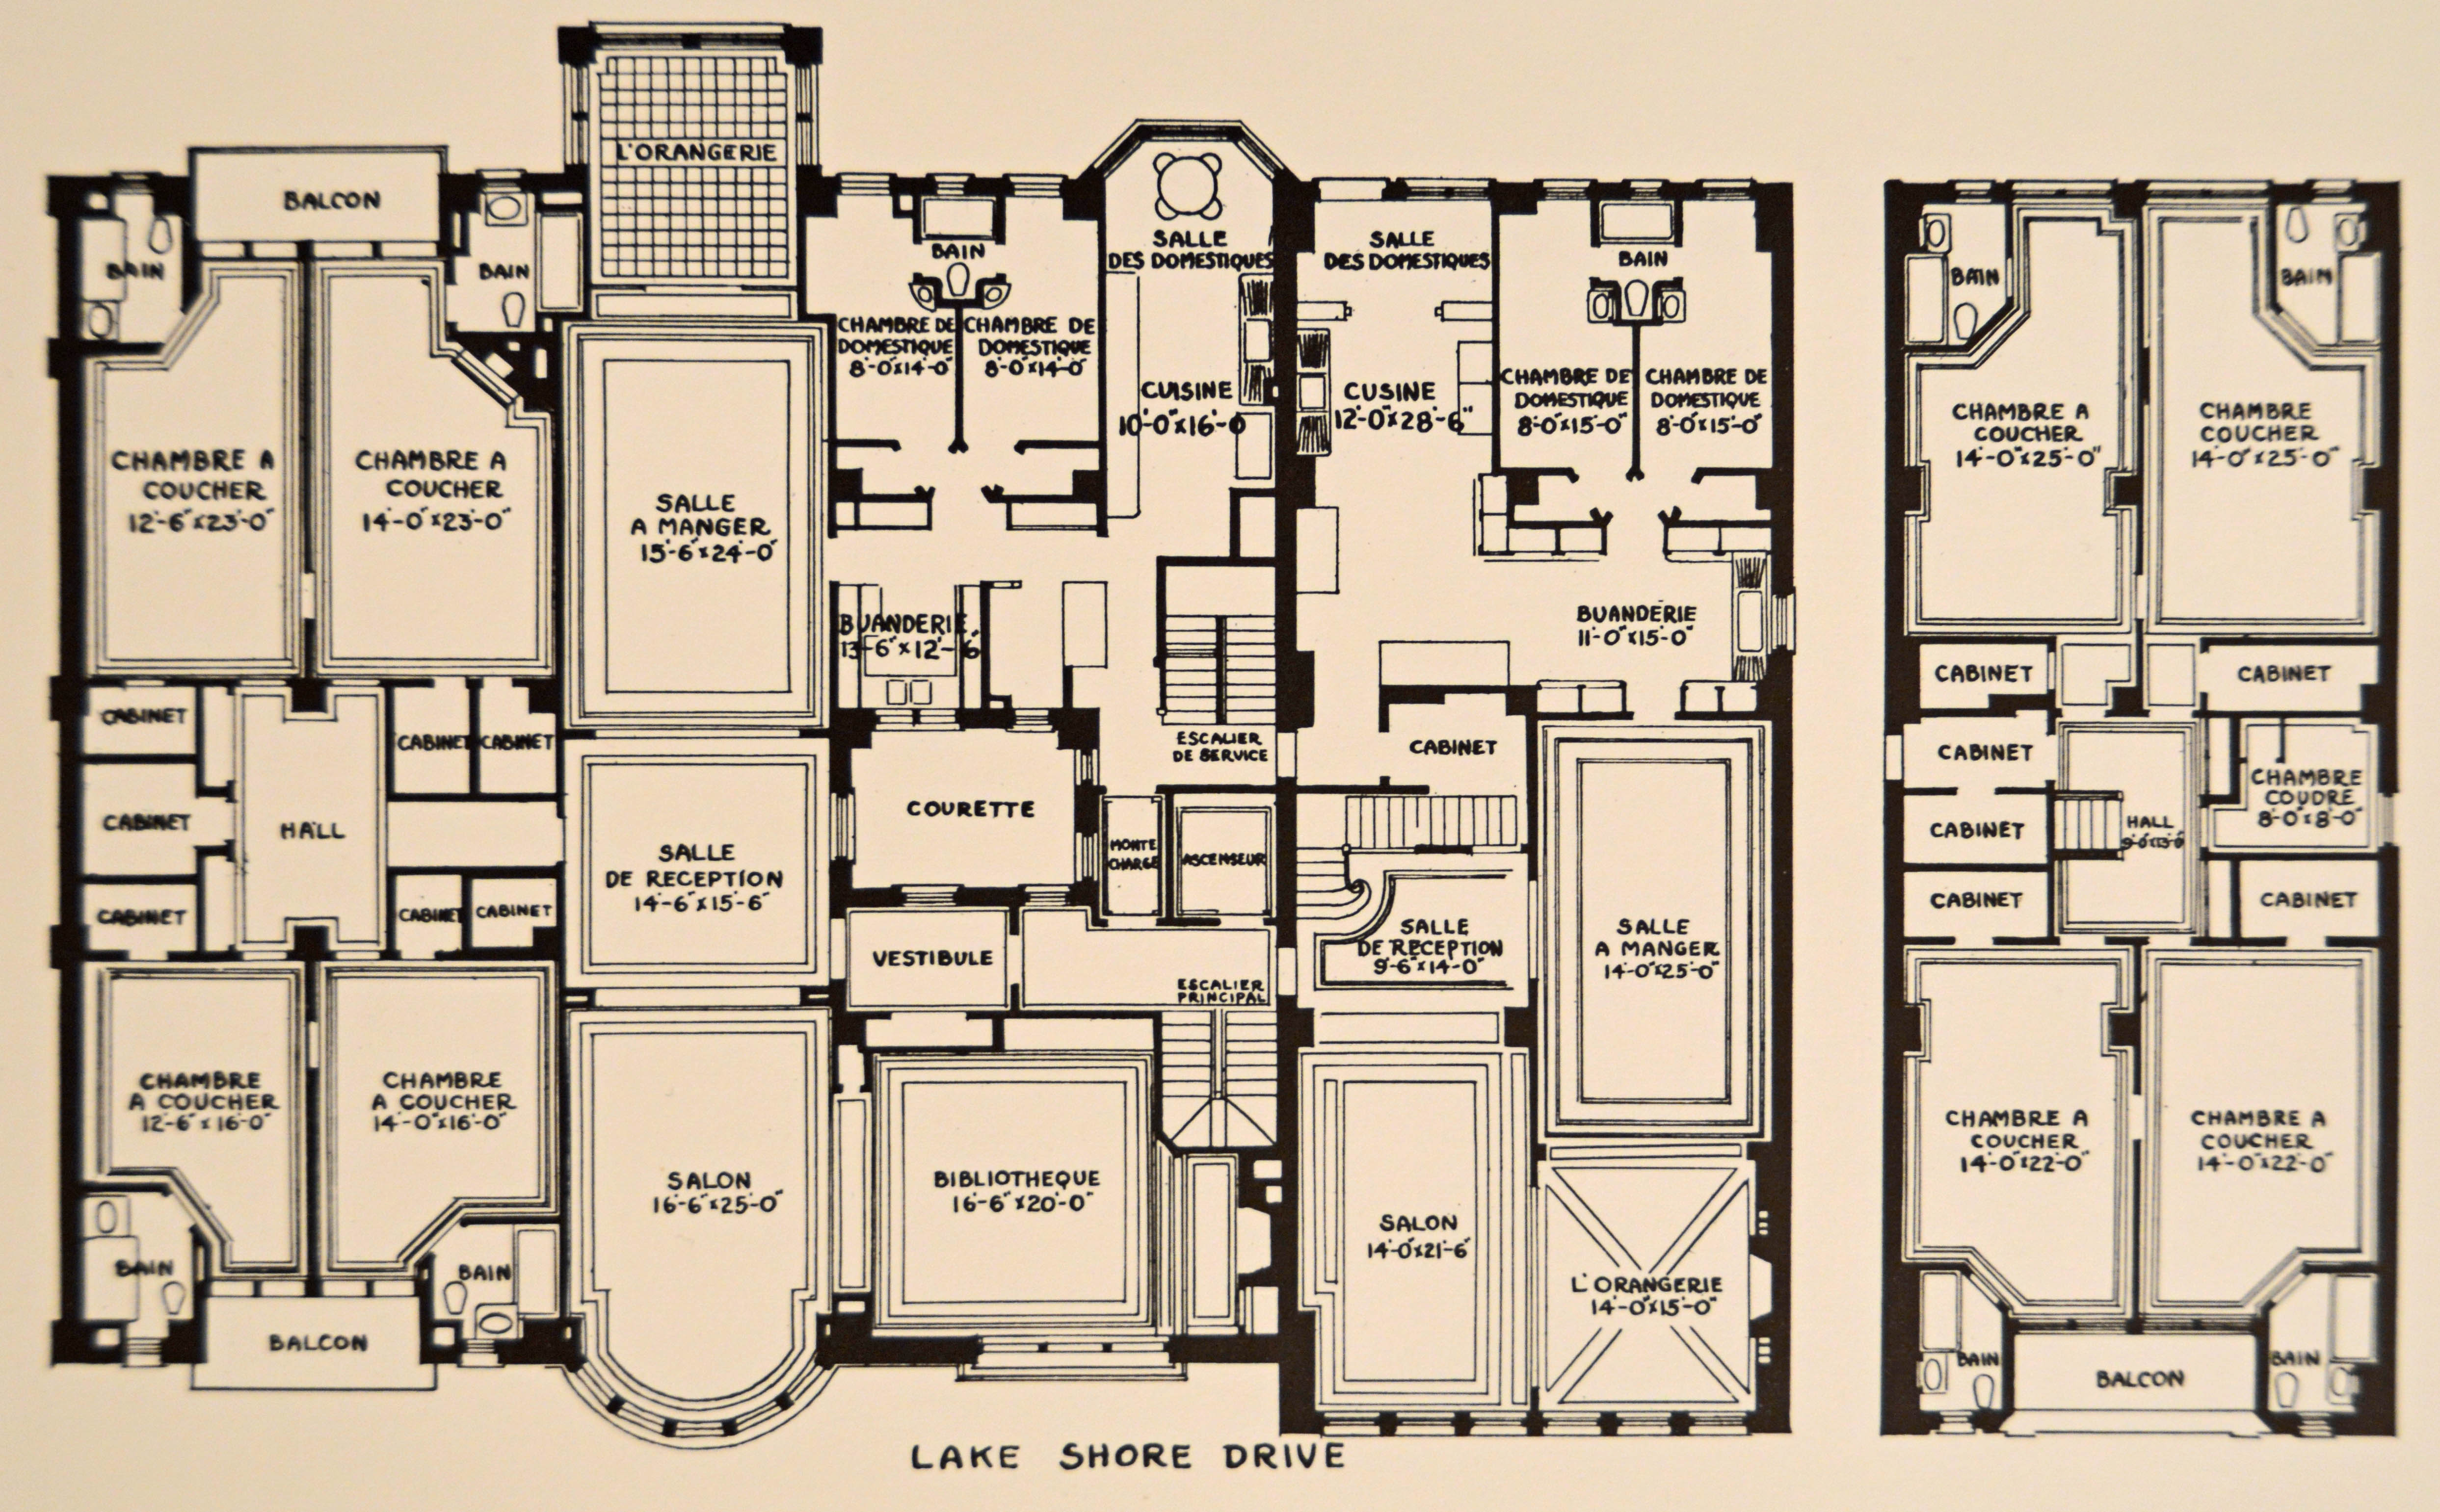 Apartments Drawing at GetDrawings.com | Free for personal ...